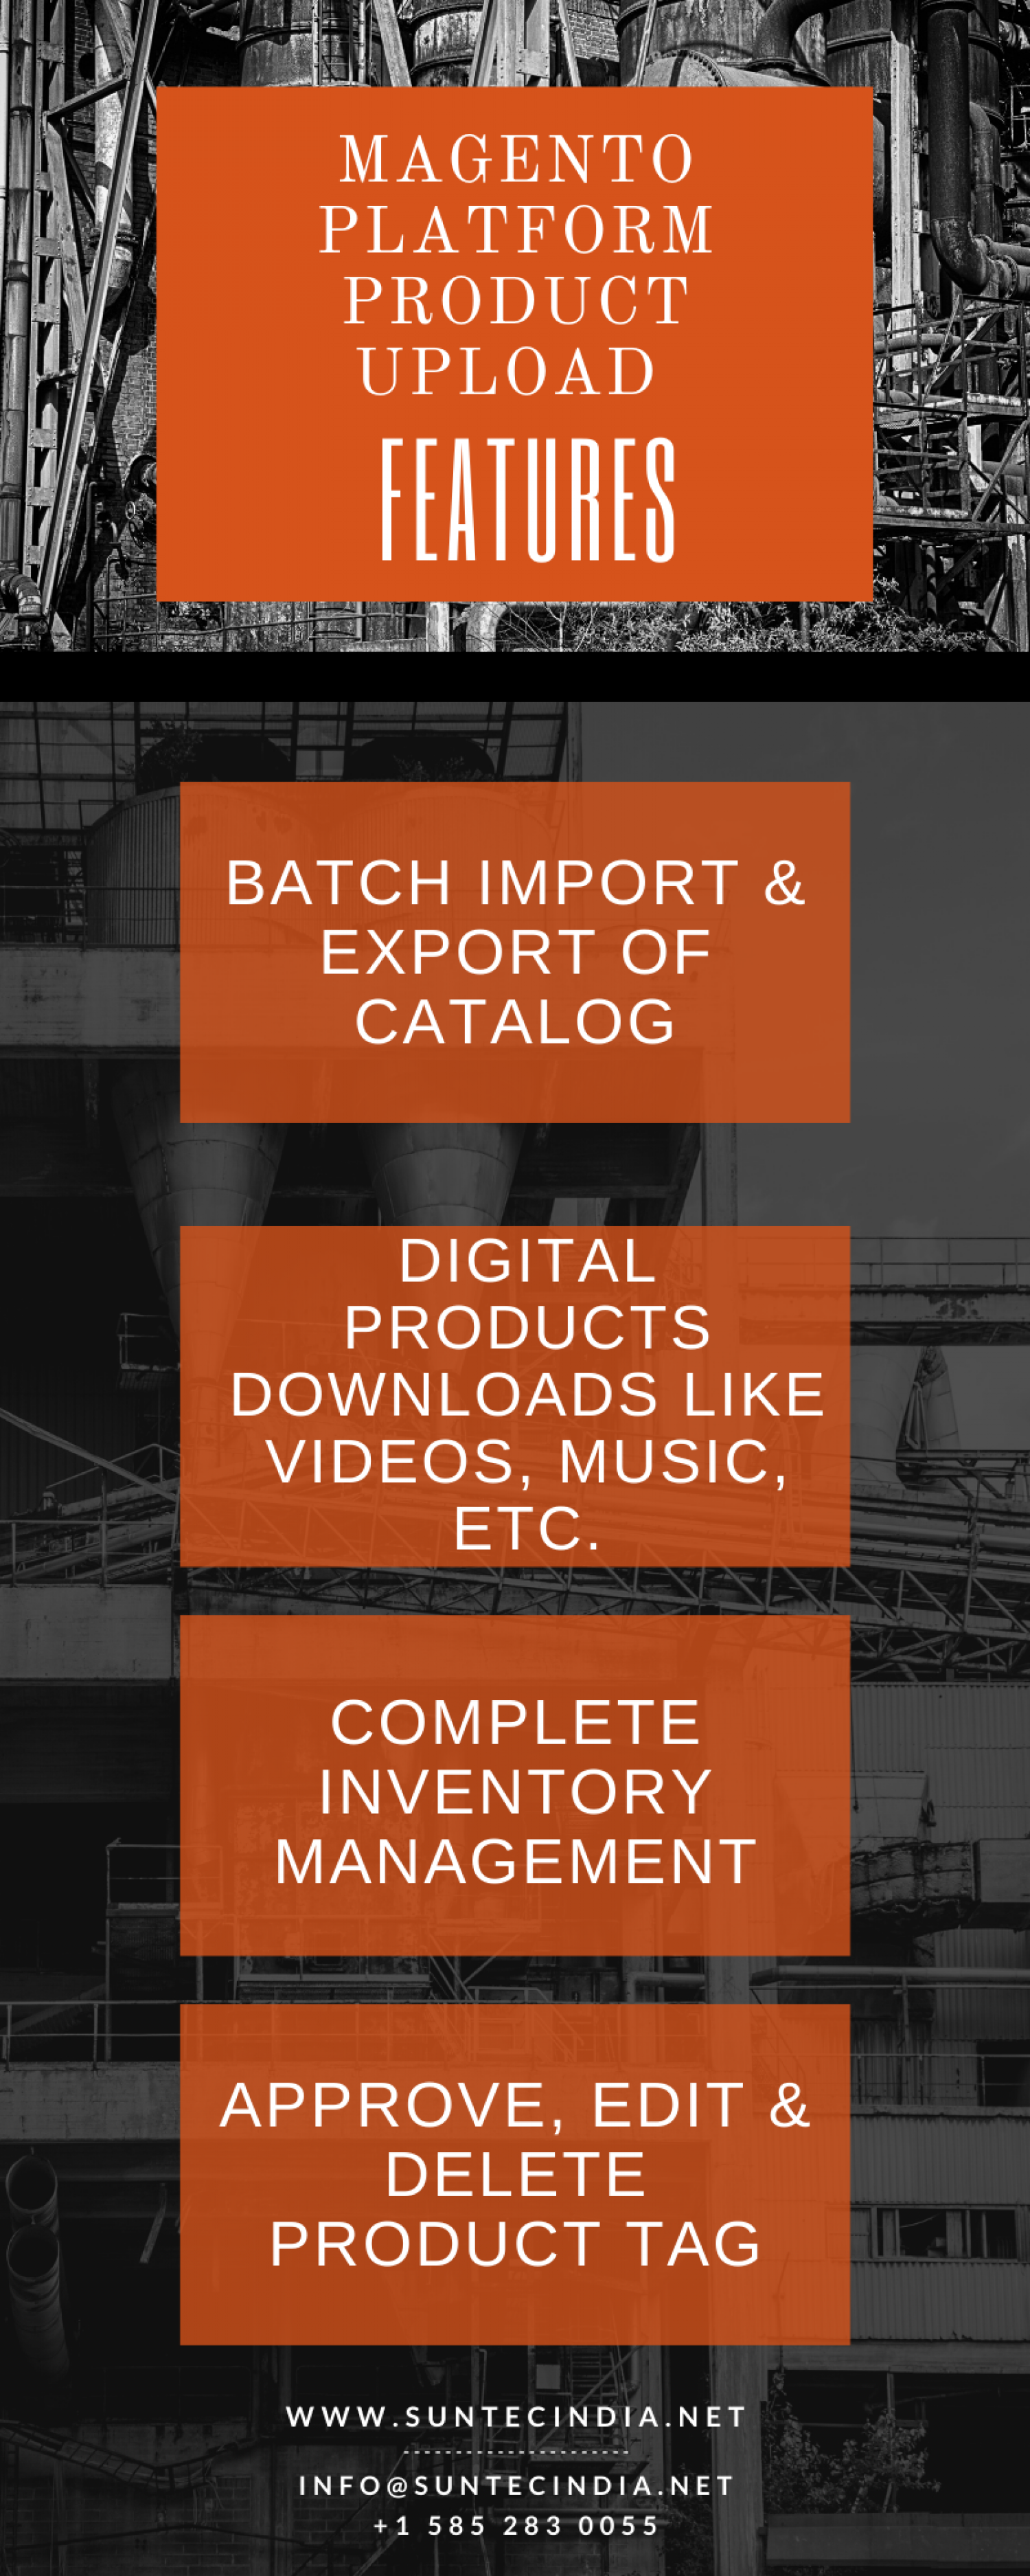 Features of Magento Platform Product Data Entry for Your eCommerce Infographic